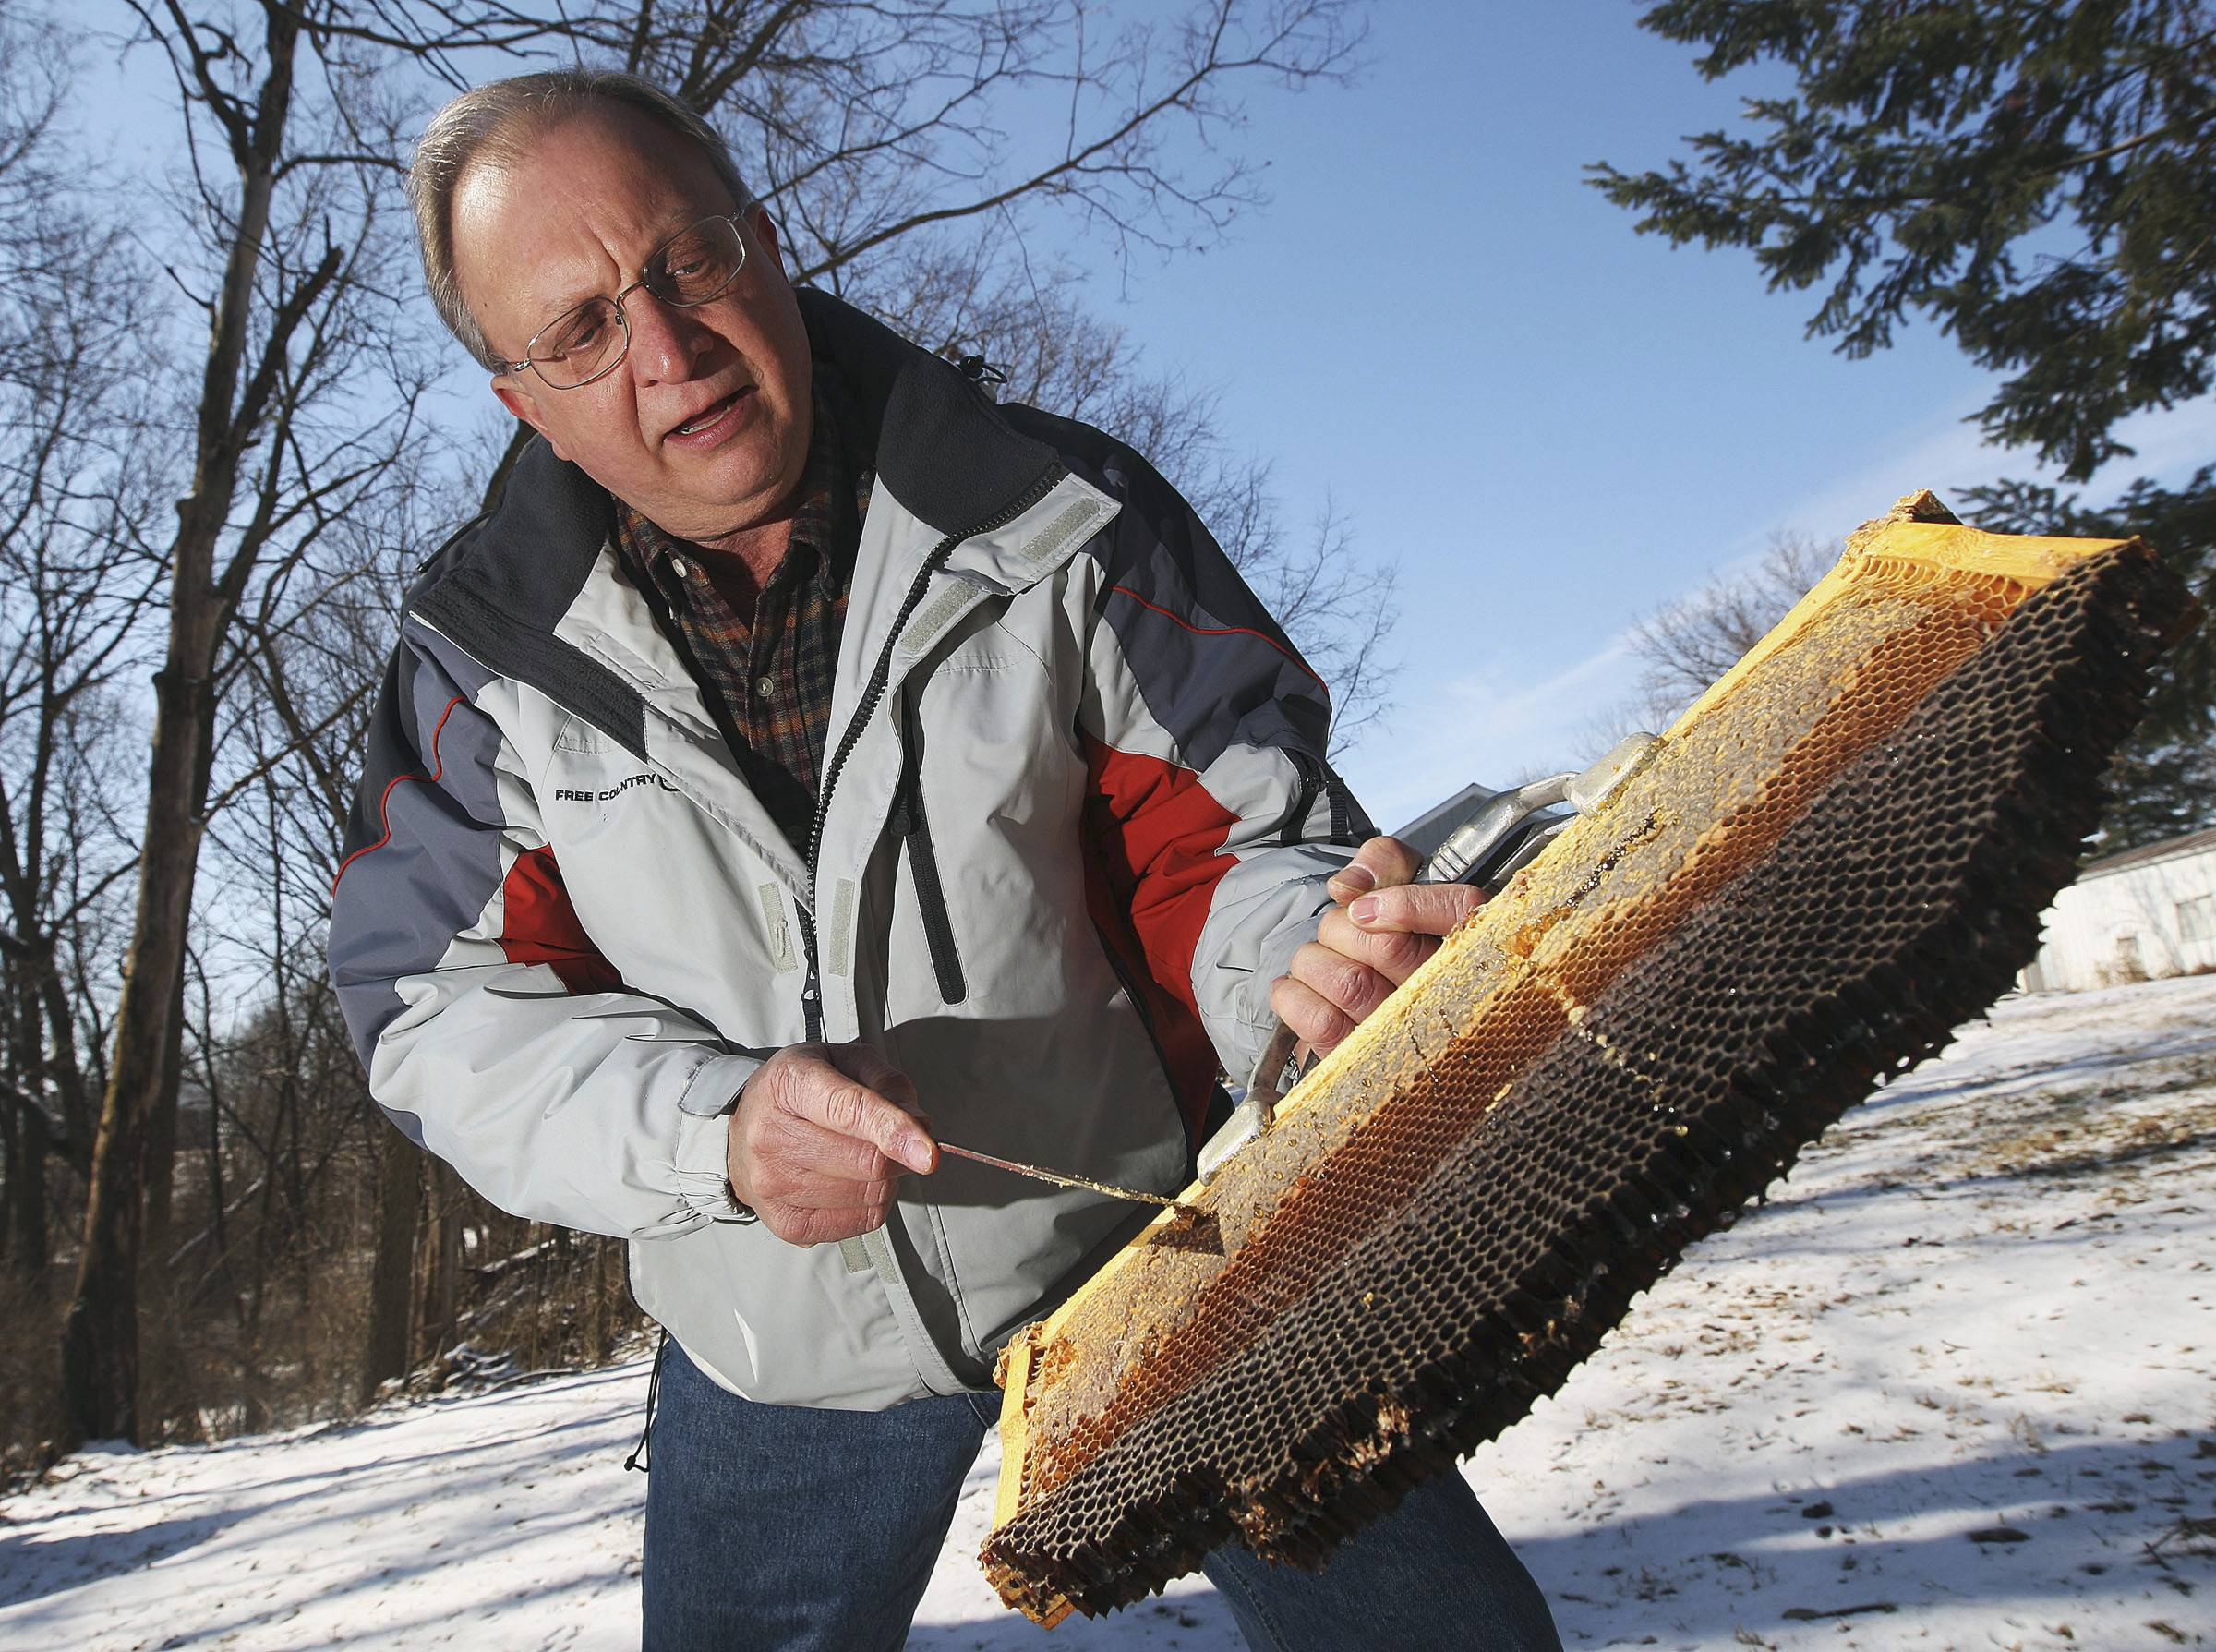 Sangamon Valley Beekeepers Association member Dave Pangrac shows an empty bee colony frame from one of his hives in his backyard in Decatur.